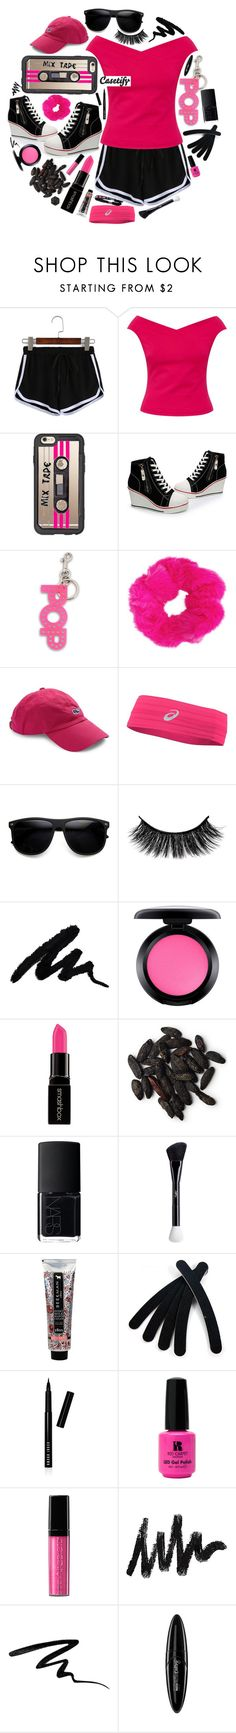 """""""Casetify Throwback Thursday Collection"""" by mrs-rc ❤ liked on Polyvore featuring Ted Baker, Casetify, STELLA McCARTNEY, Vineyard Vines, Asics, ZeroUV, MAC Cosmetics, Smashbox, NARS Cosmetics and Yves Saint Laurent"""